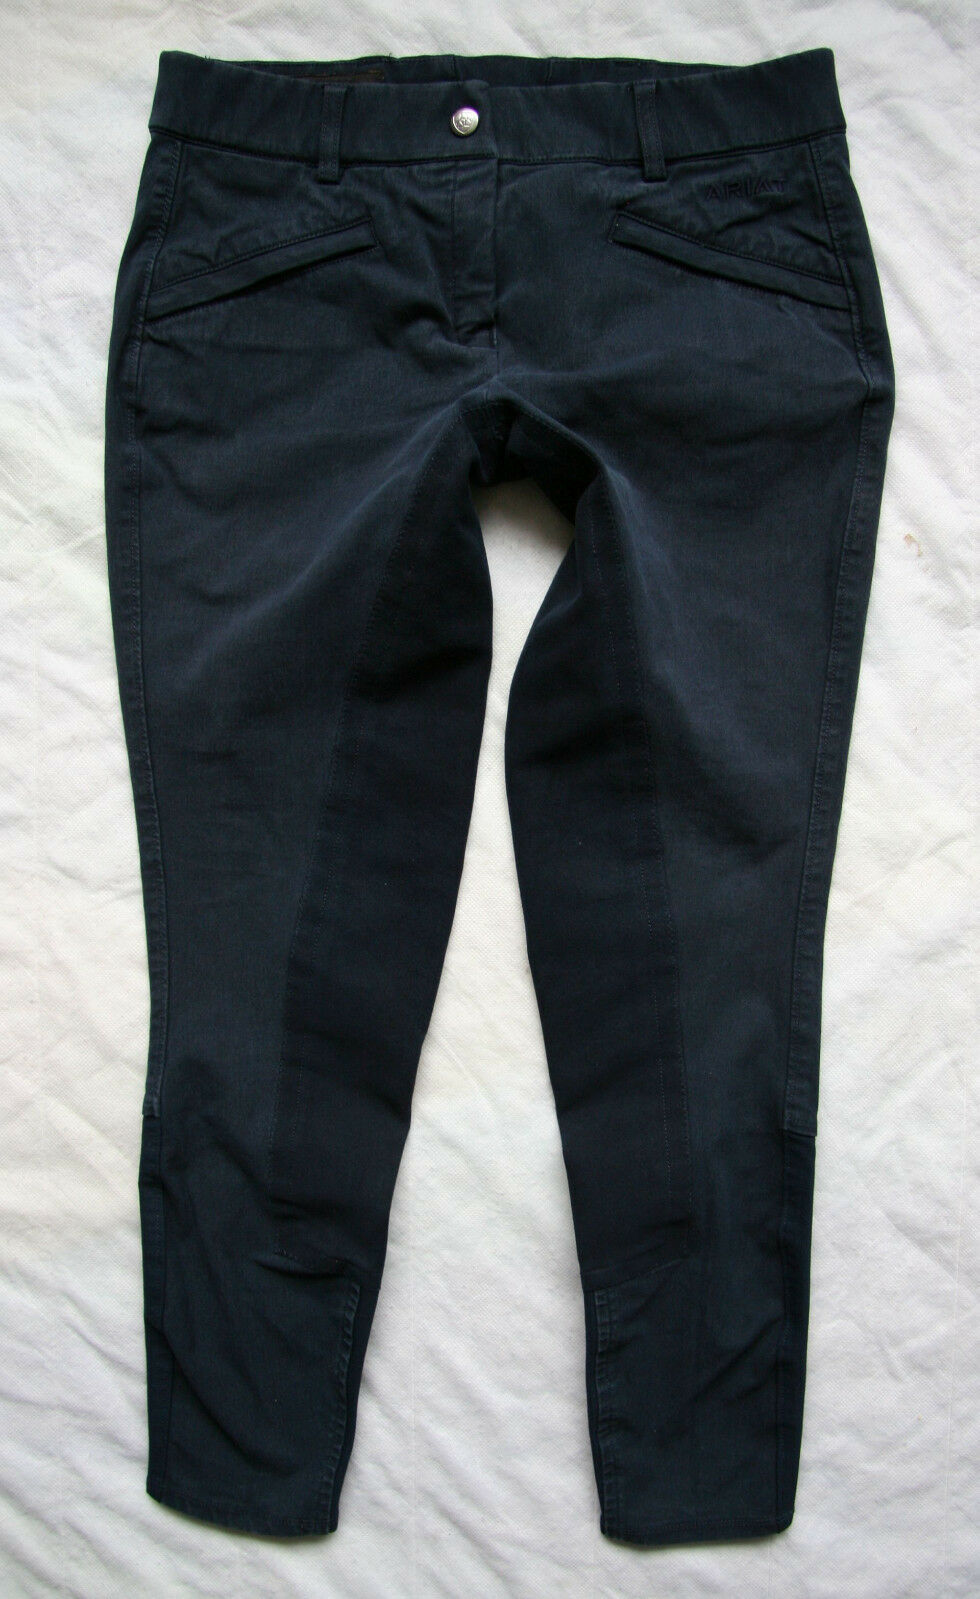 Breeches ARIAT PERFORMER   full seat    flex legs    US 24    for lower lady  high discount